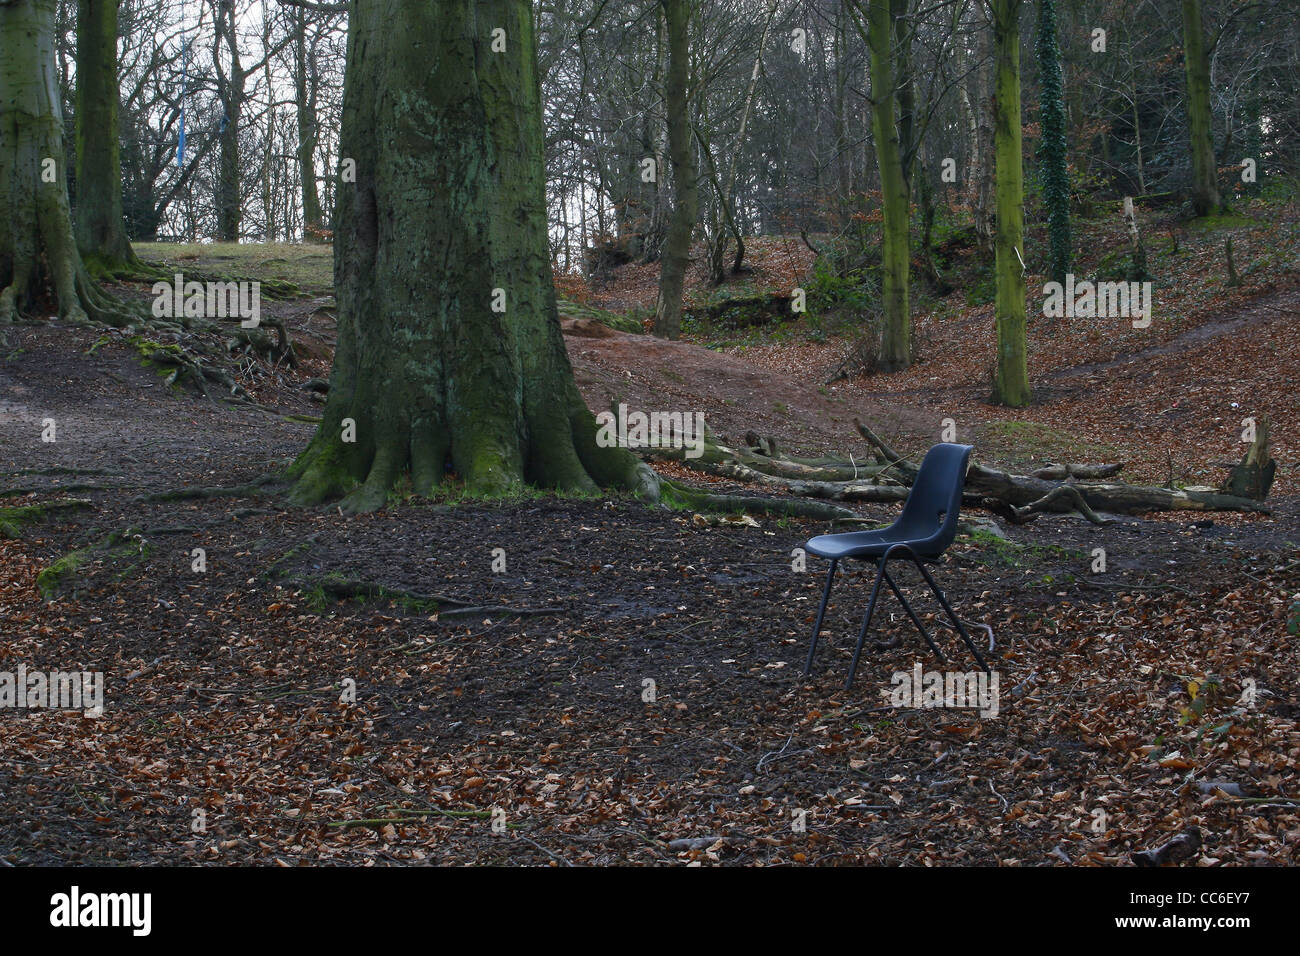 plastic chair in forest near Sparken Hill, Worksop, Notts, England, UK - Stock Image